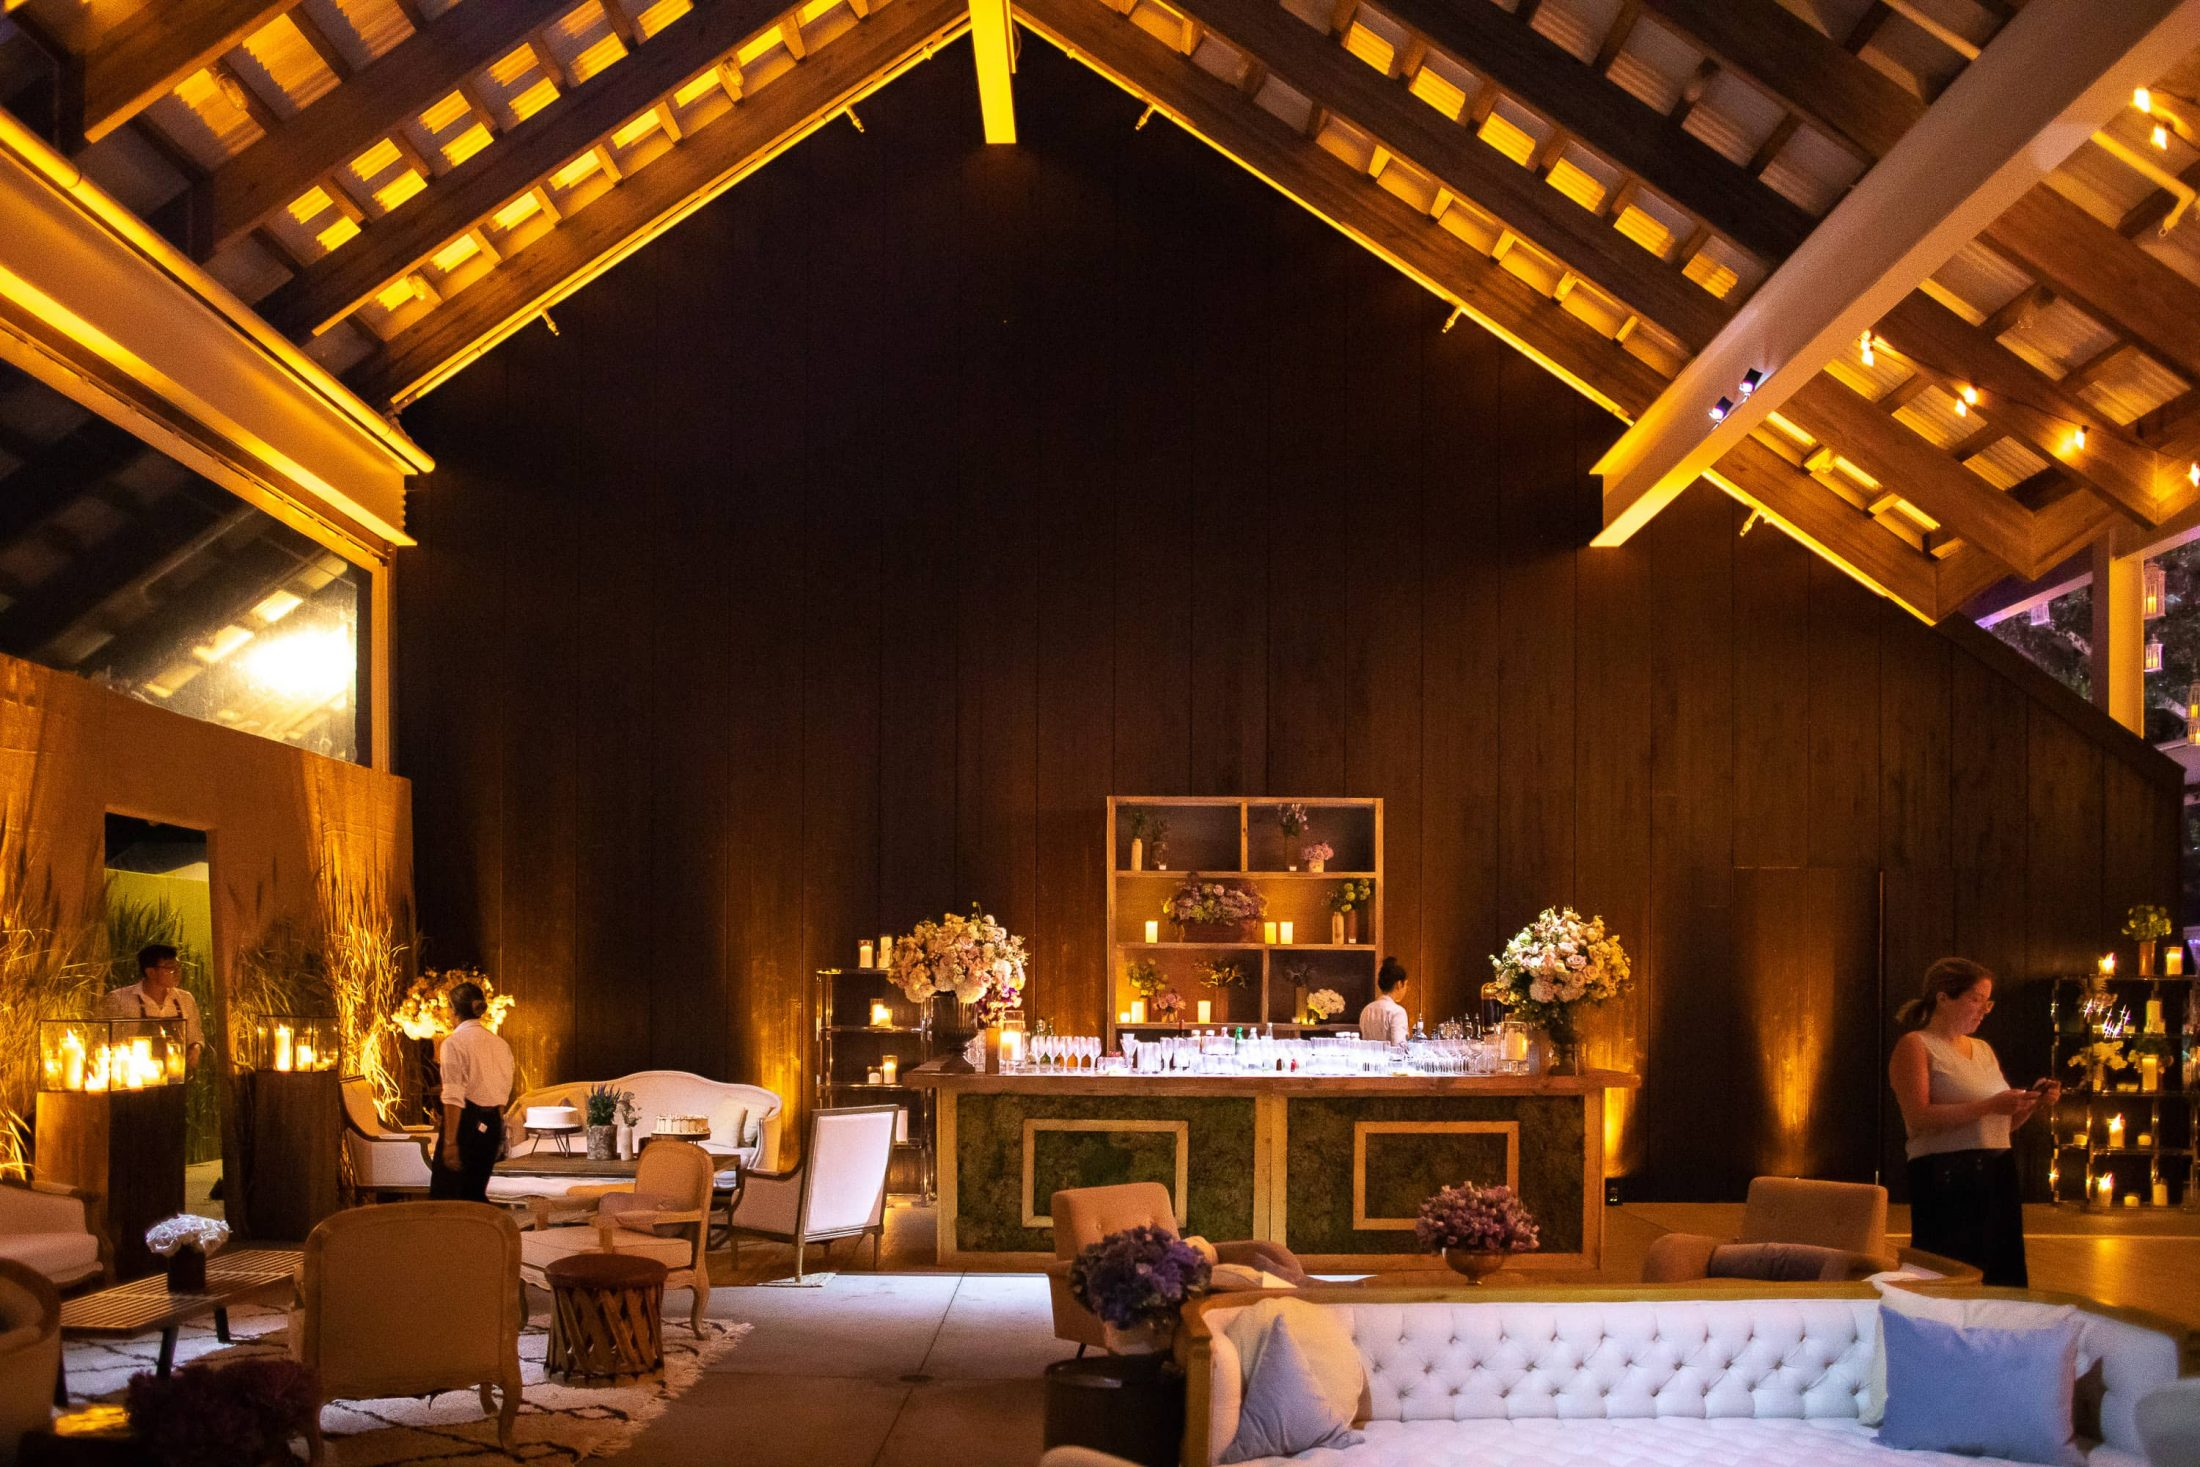 Bar during reception at this Hamptons wedding weekend held at The Parrish Museum | Photo by Roey Yohai Studio